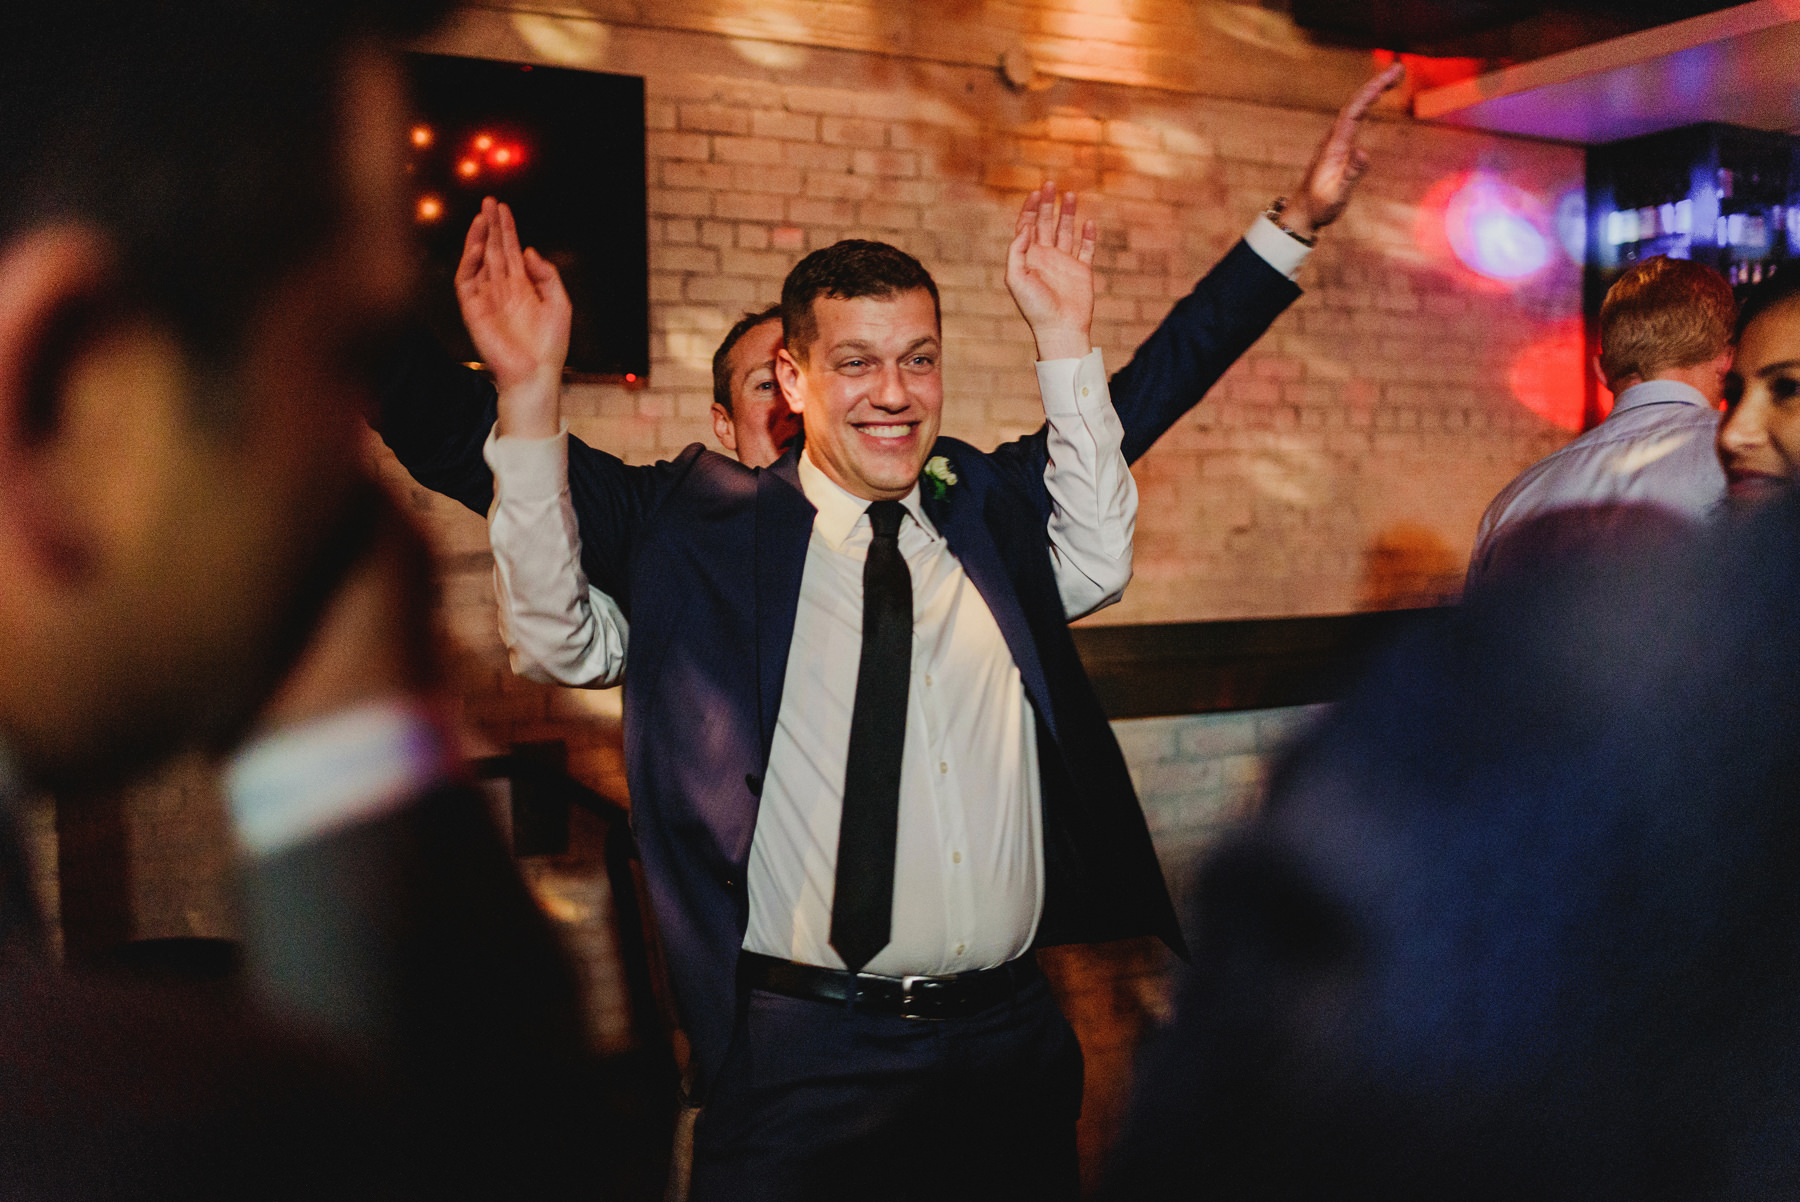 Groom dancing at reception at Brix & Mortar